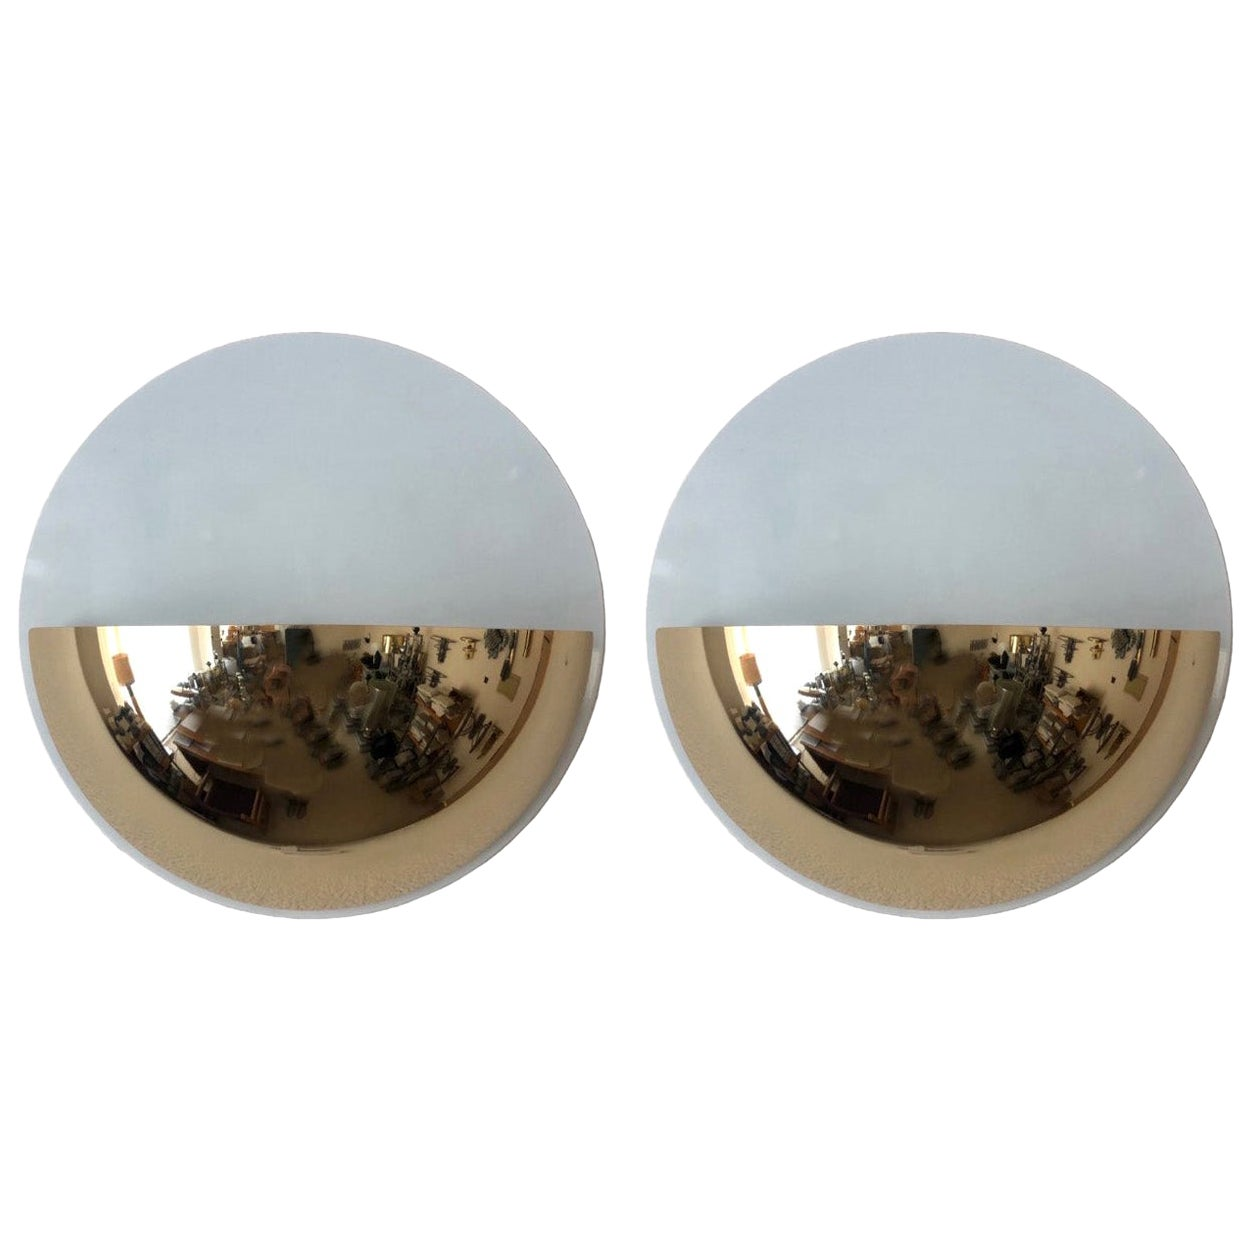 Pair of Spanish Postmodern Golden White Wall Sconces by Estiluz, 1980s